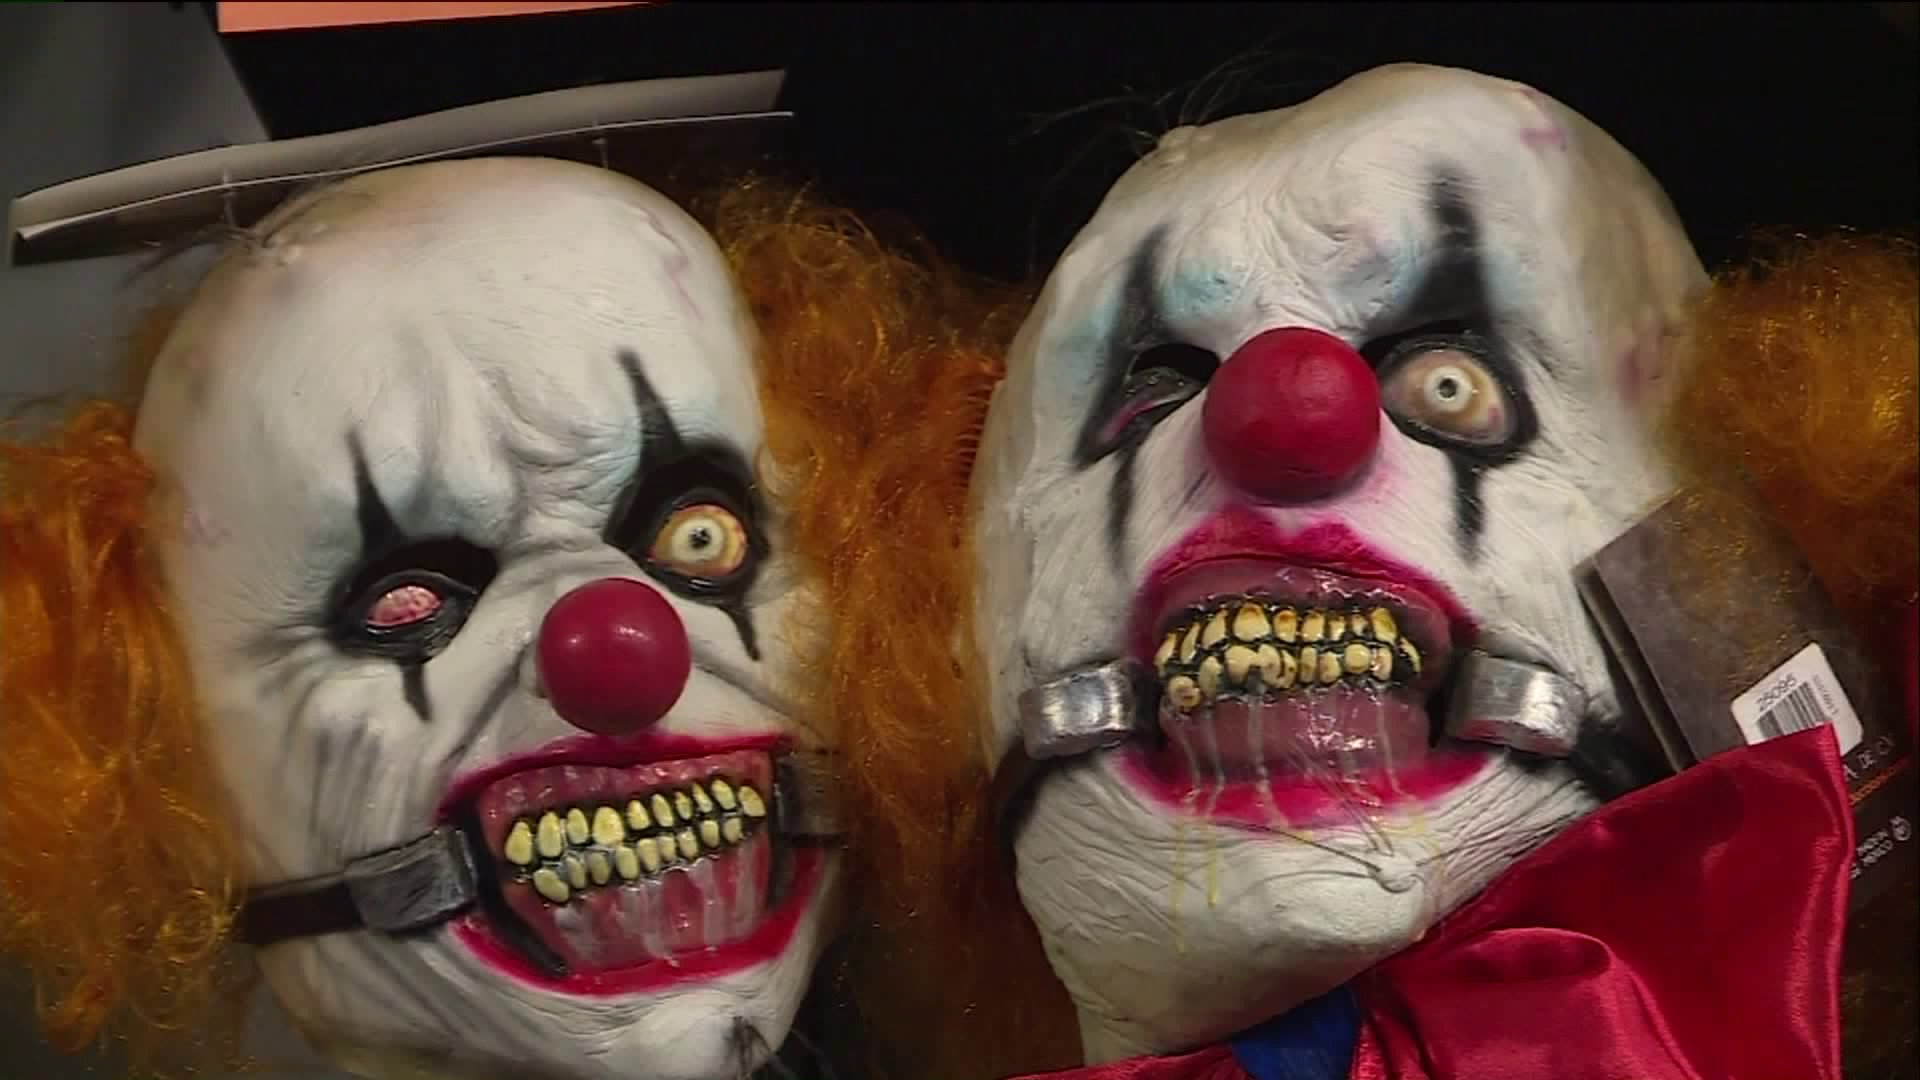 clownmasks